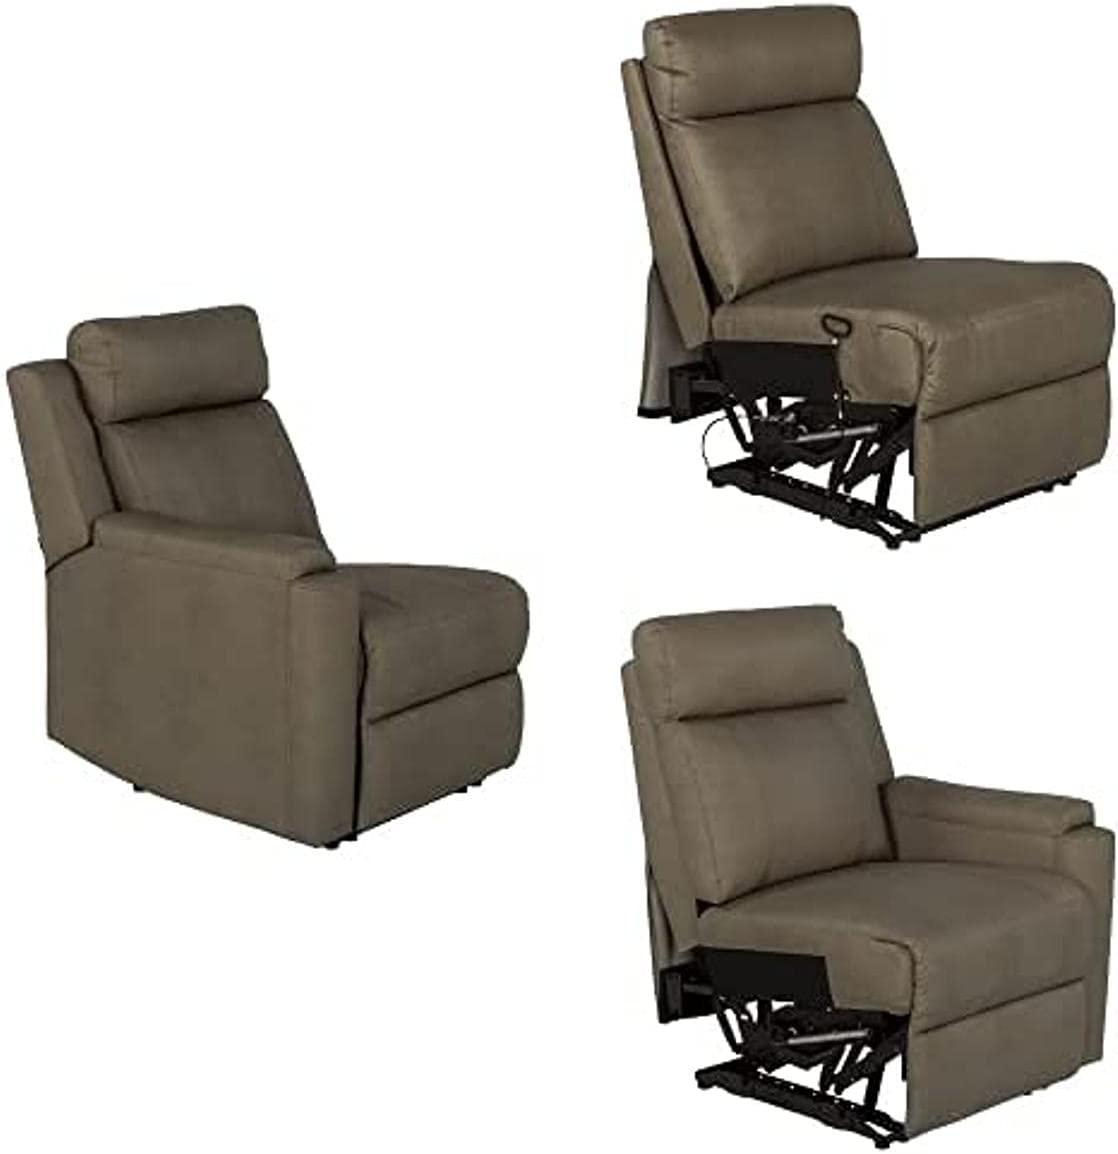 THOMAS PAYNE Heritage Series Theater Seating 5th OFFicial store Wh Sofa Quantity limited 78